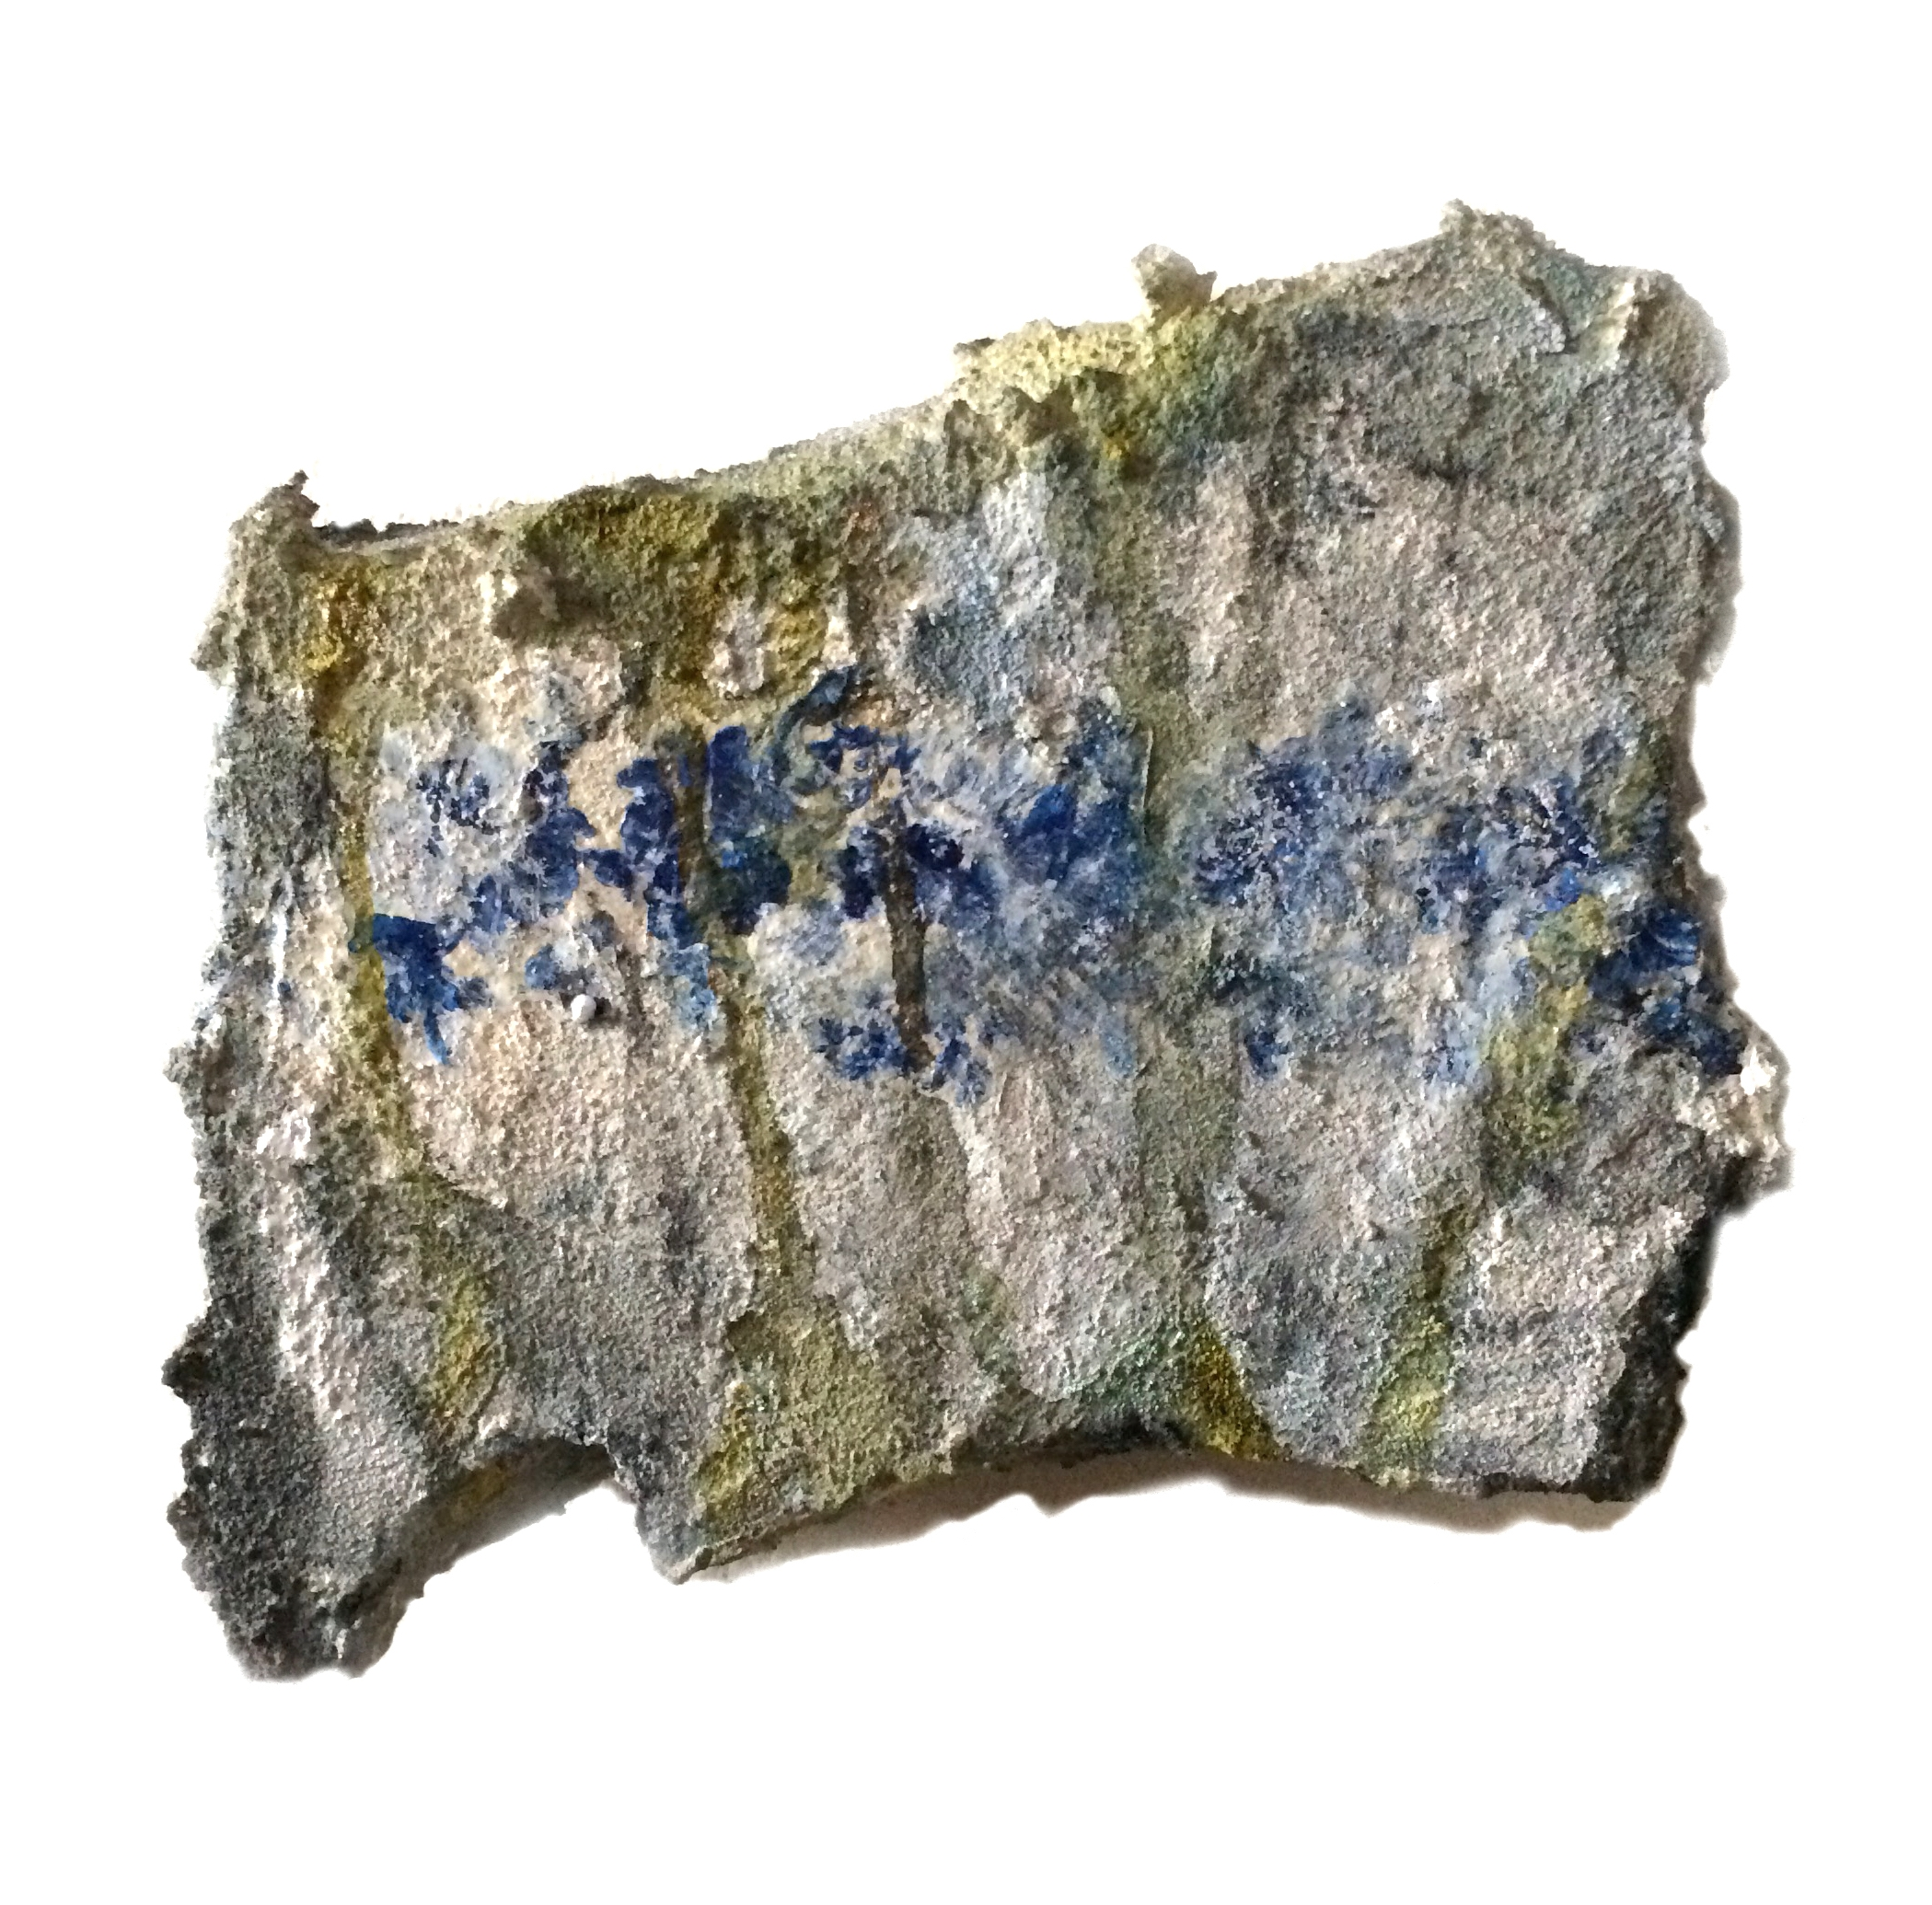 Tile Fragment with Flowers